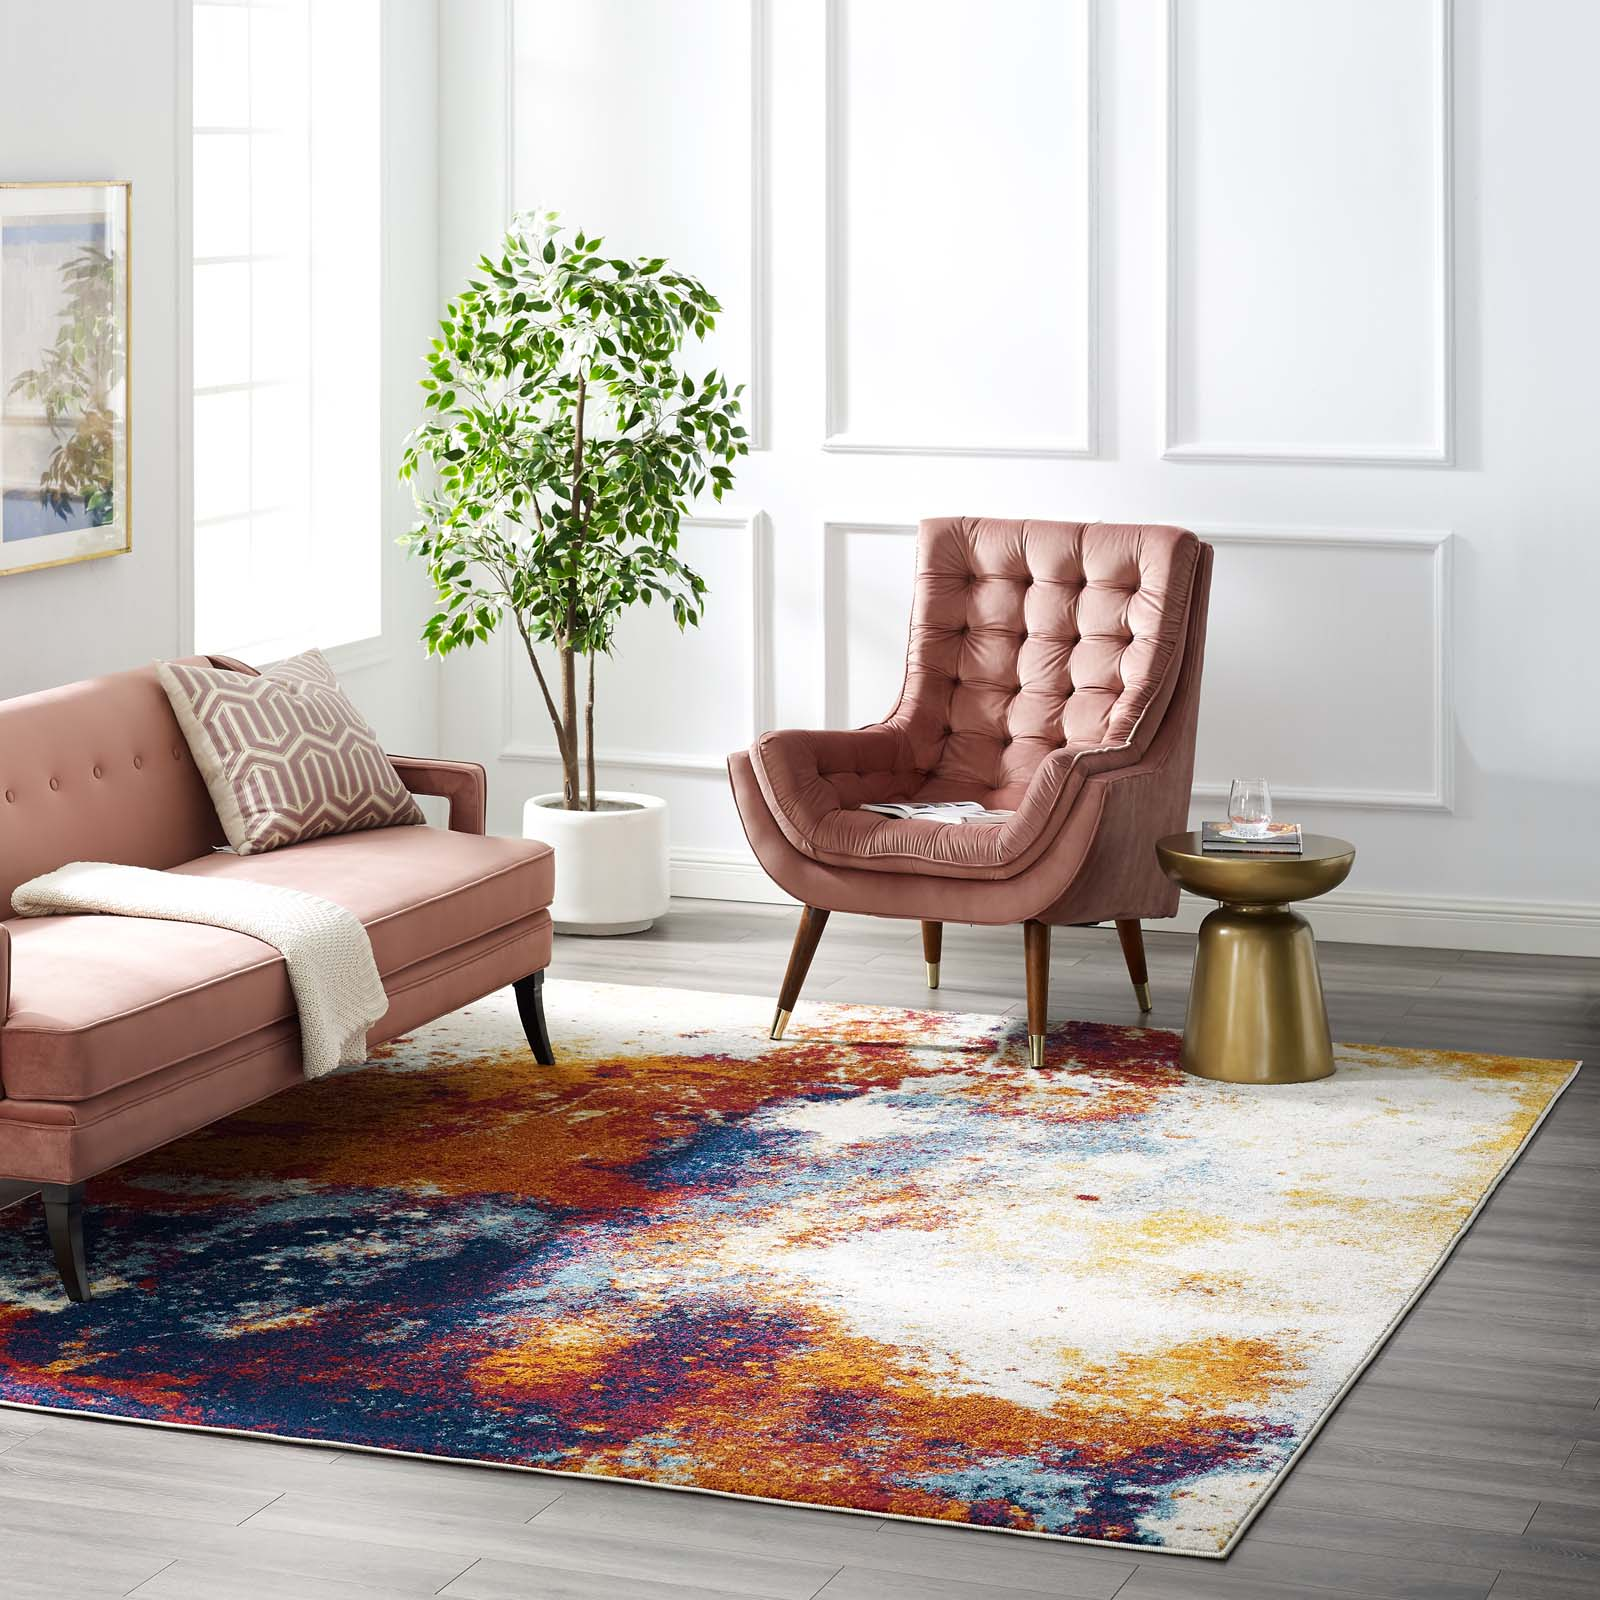 Picture of: Modway Entourage Adeline Contemporary Modern Abstract 8×10 Area Rug Re Modish Store